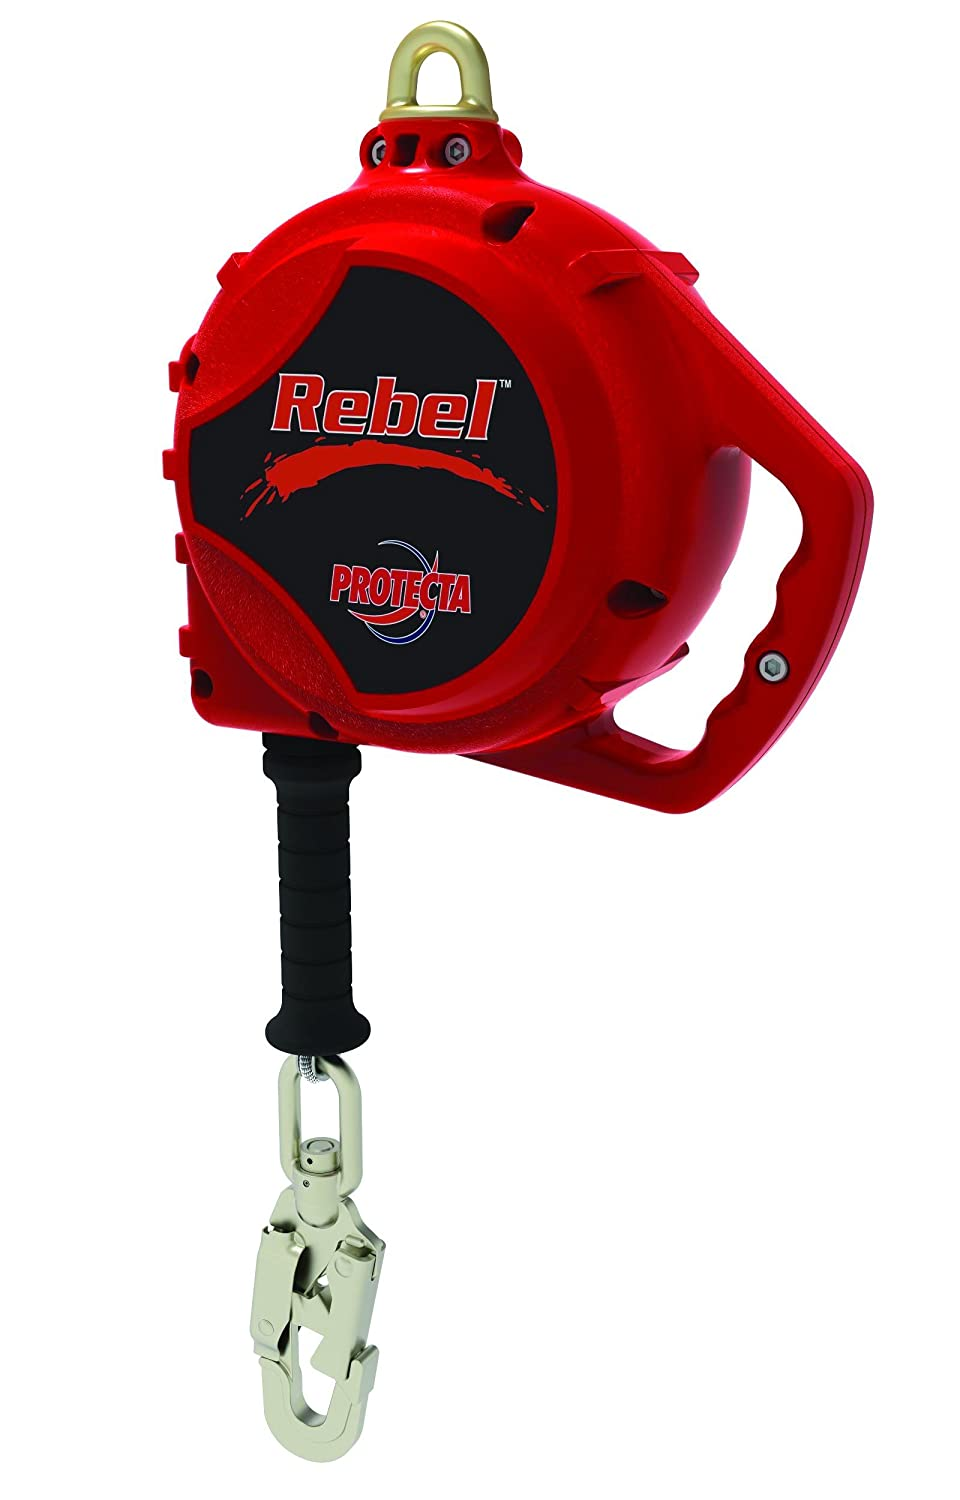 3M Protecta Rebel 3590500 Self Retracting Lifeline, 33-Feet Galvanized Cable, Thermoplastic Housing, Carabiner, 420LB Capacity, Red by 3M Fall Protection Business  B00CNAODUI